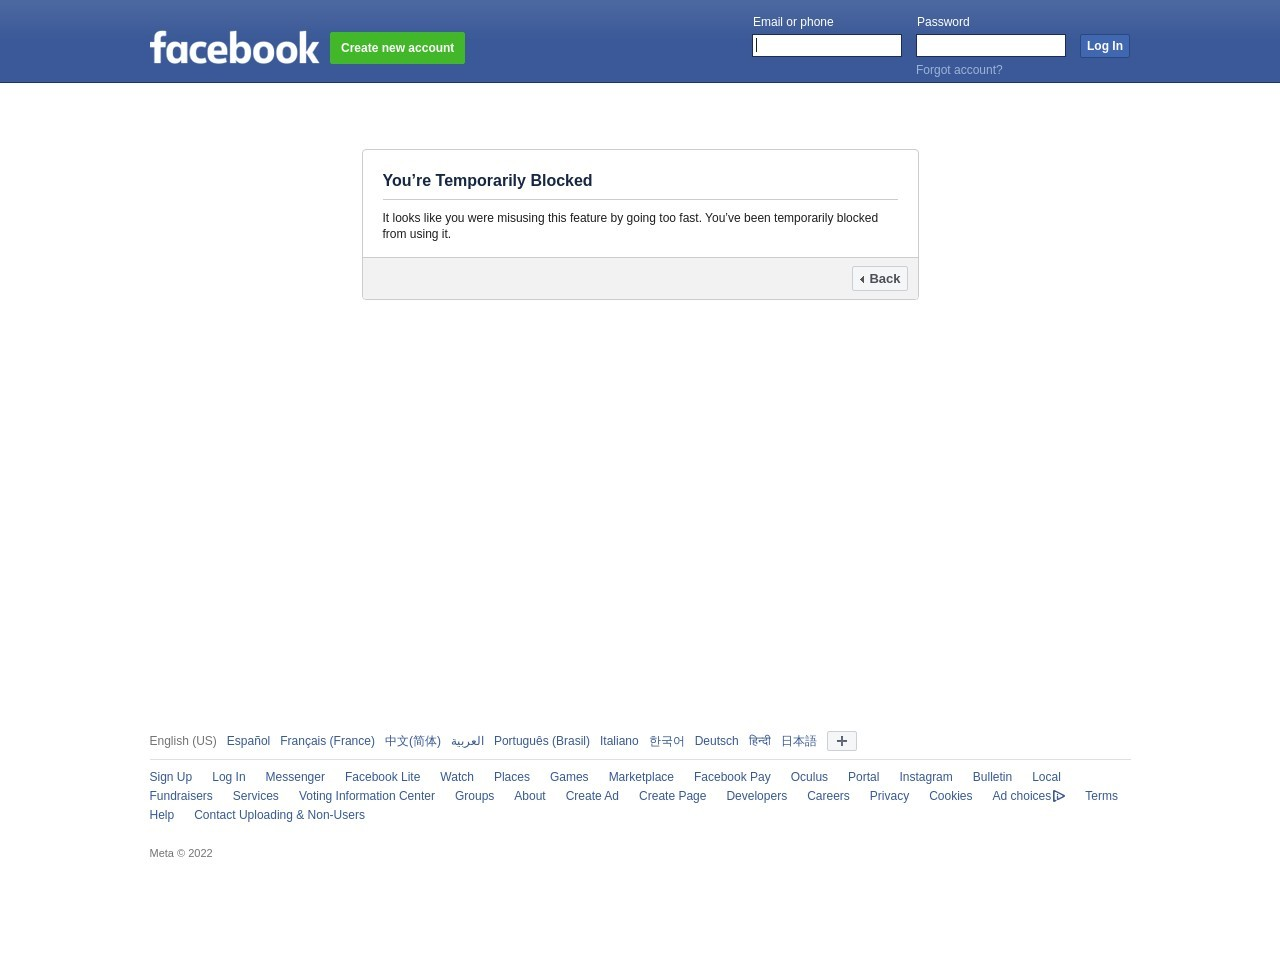 Queensland Orchid International on Facebook Group